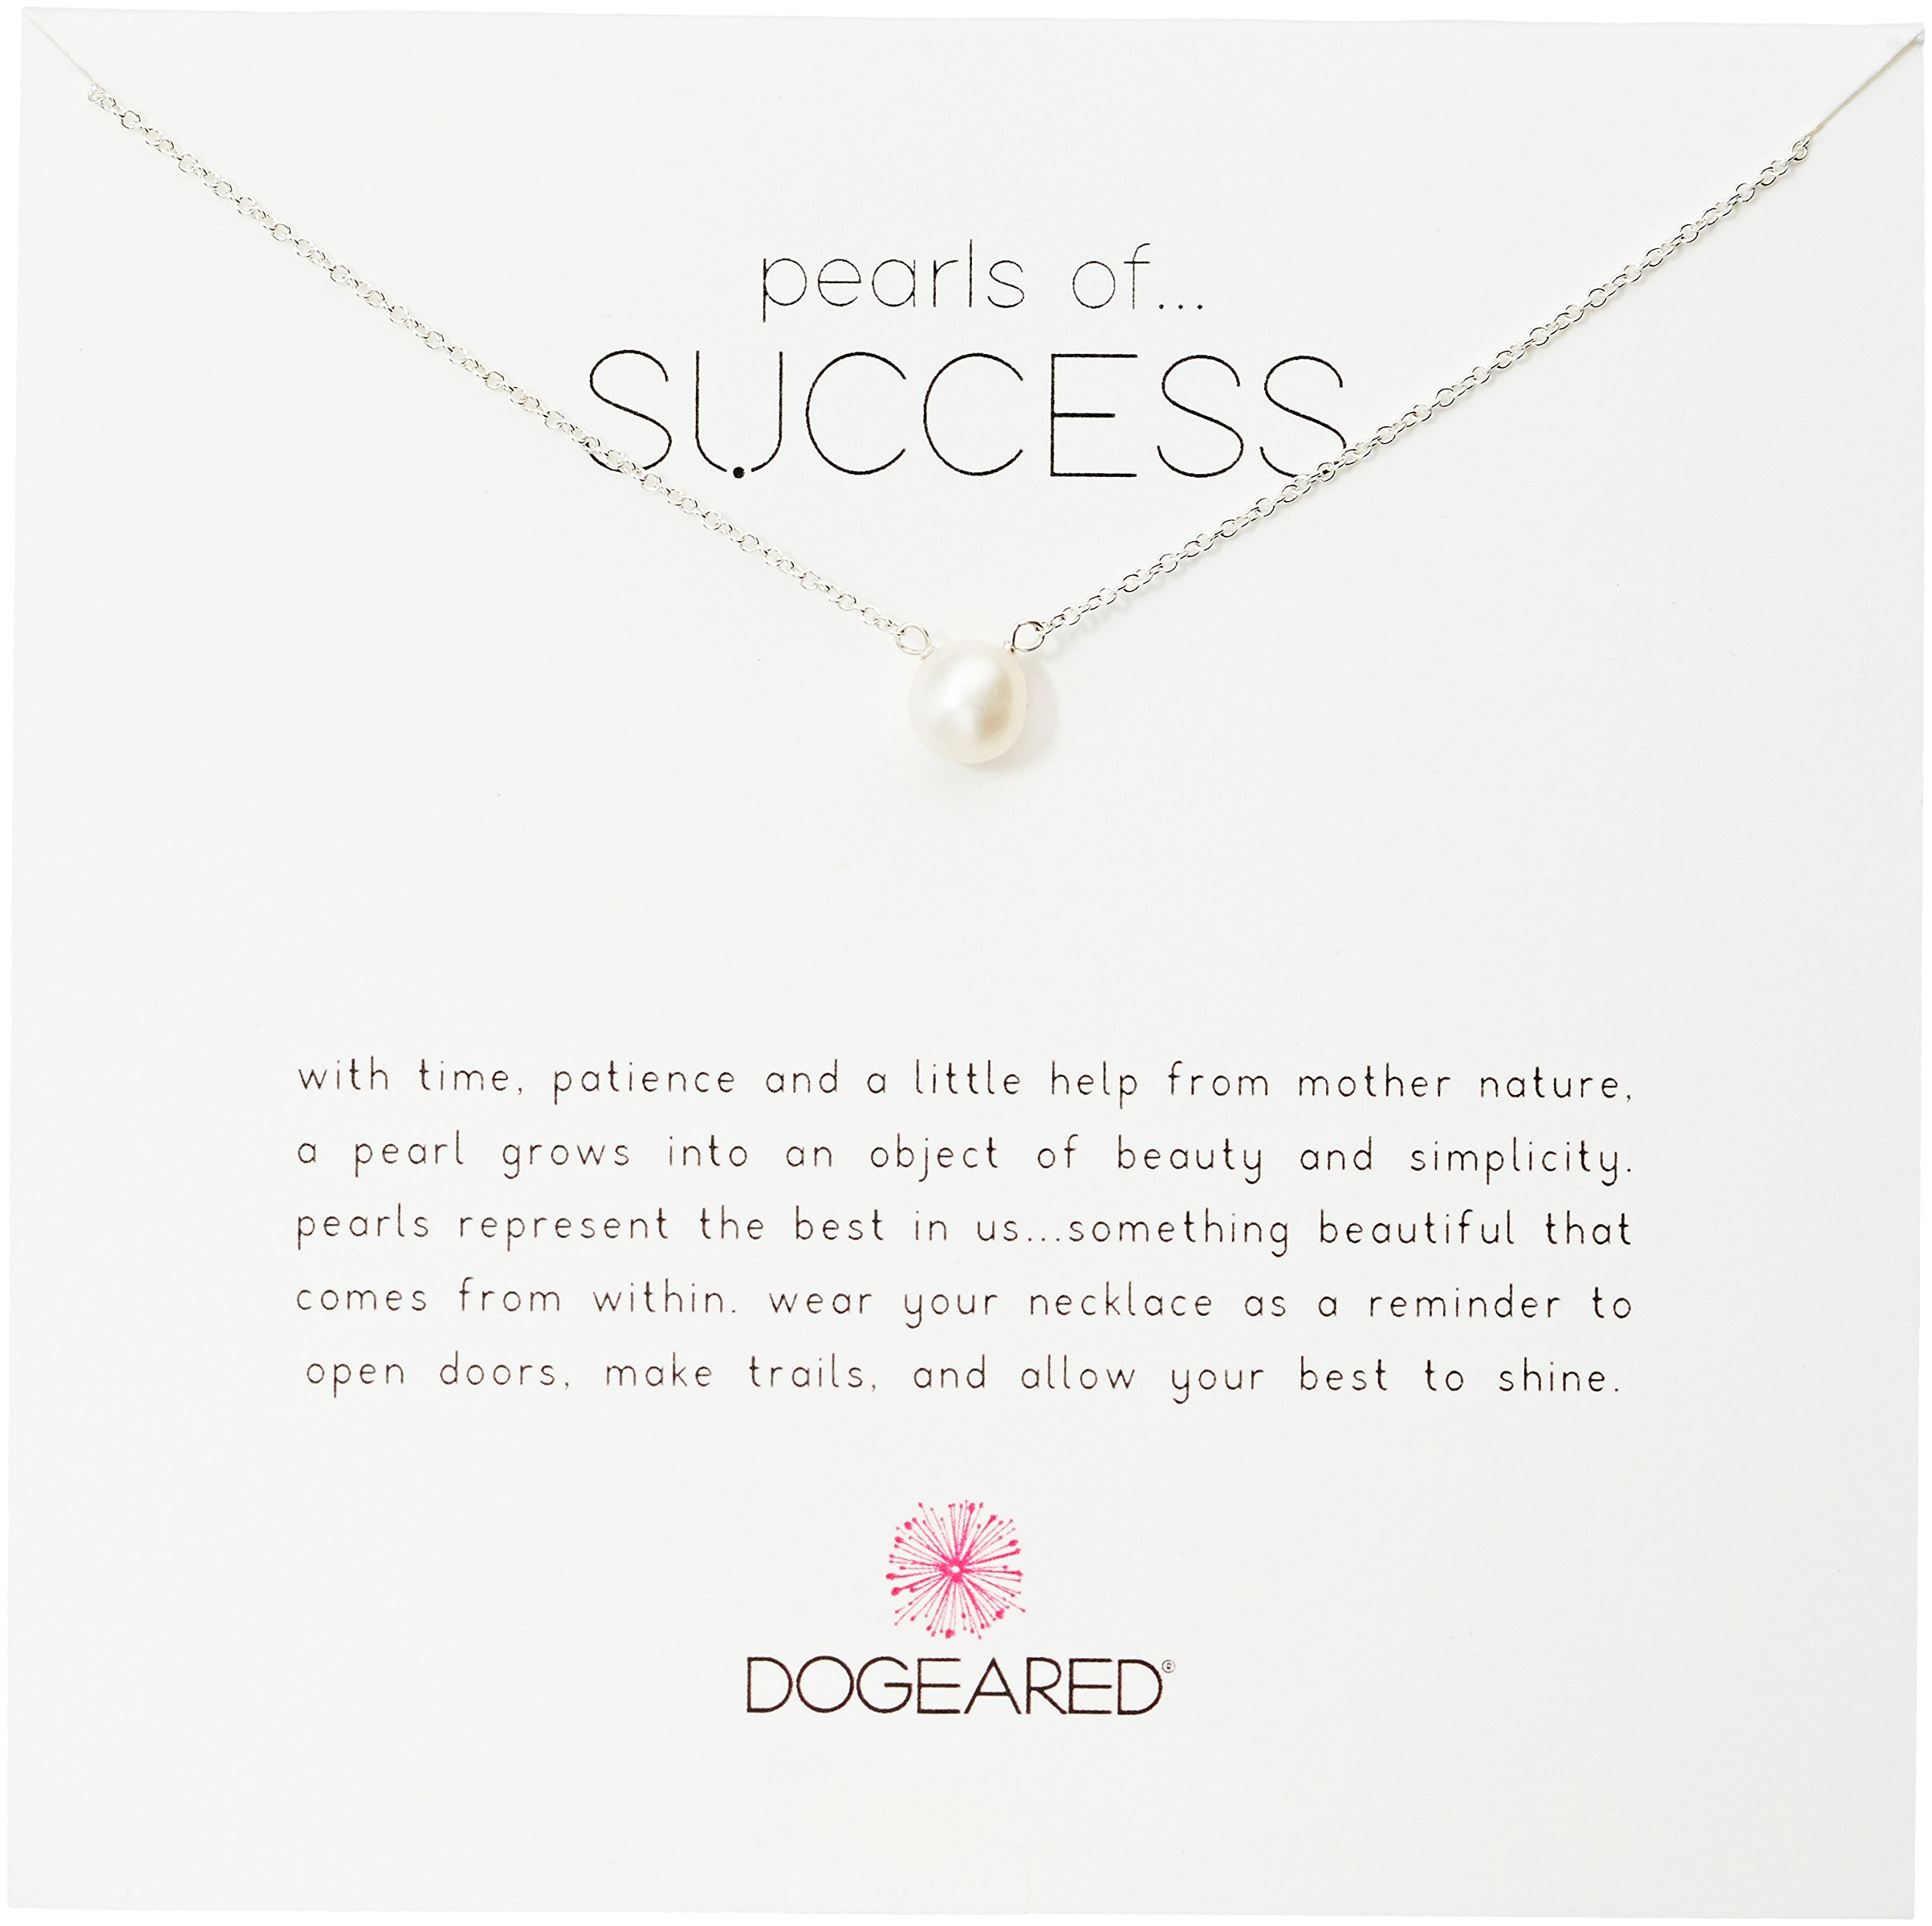 Dogeared Pearls of Success, Small White Pearl, Silver Chain Necklace, 16''+2.5'' Extender